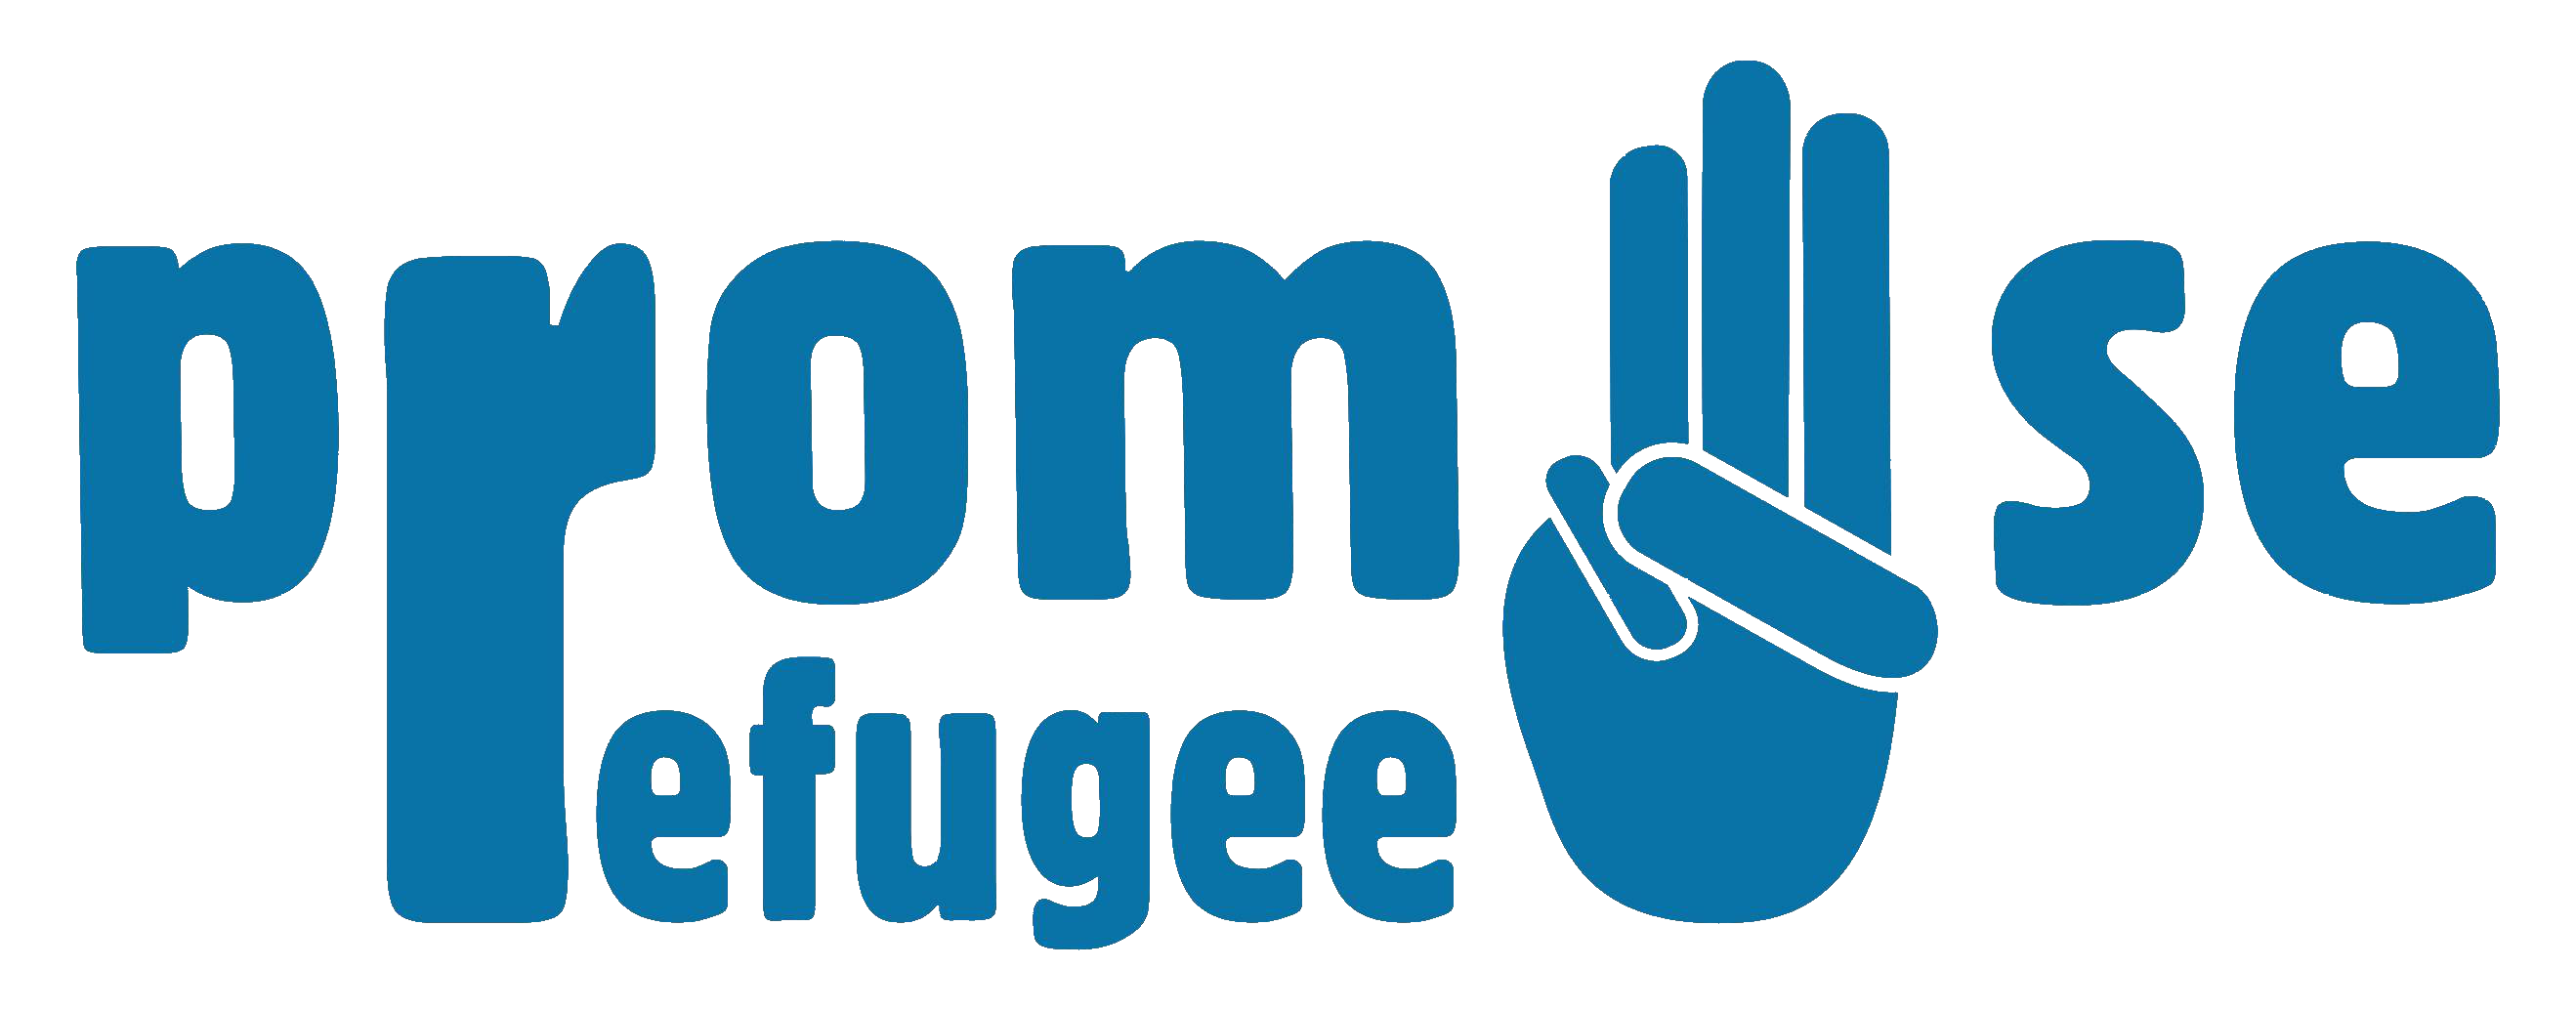 Promoting refugee Integration Support through youth Engagement